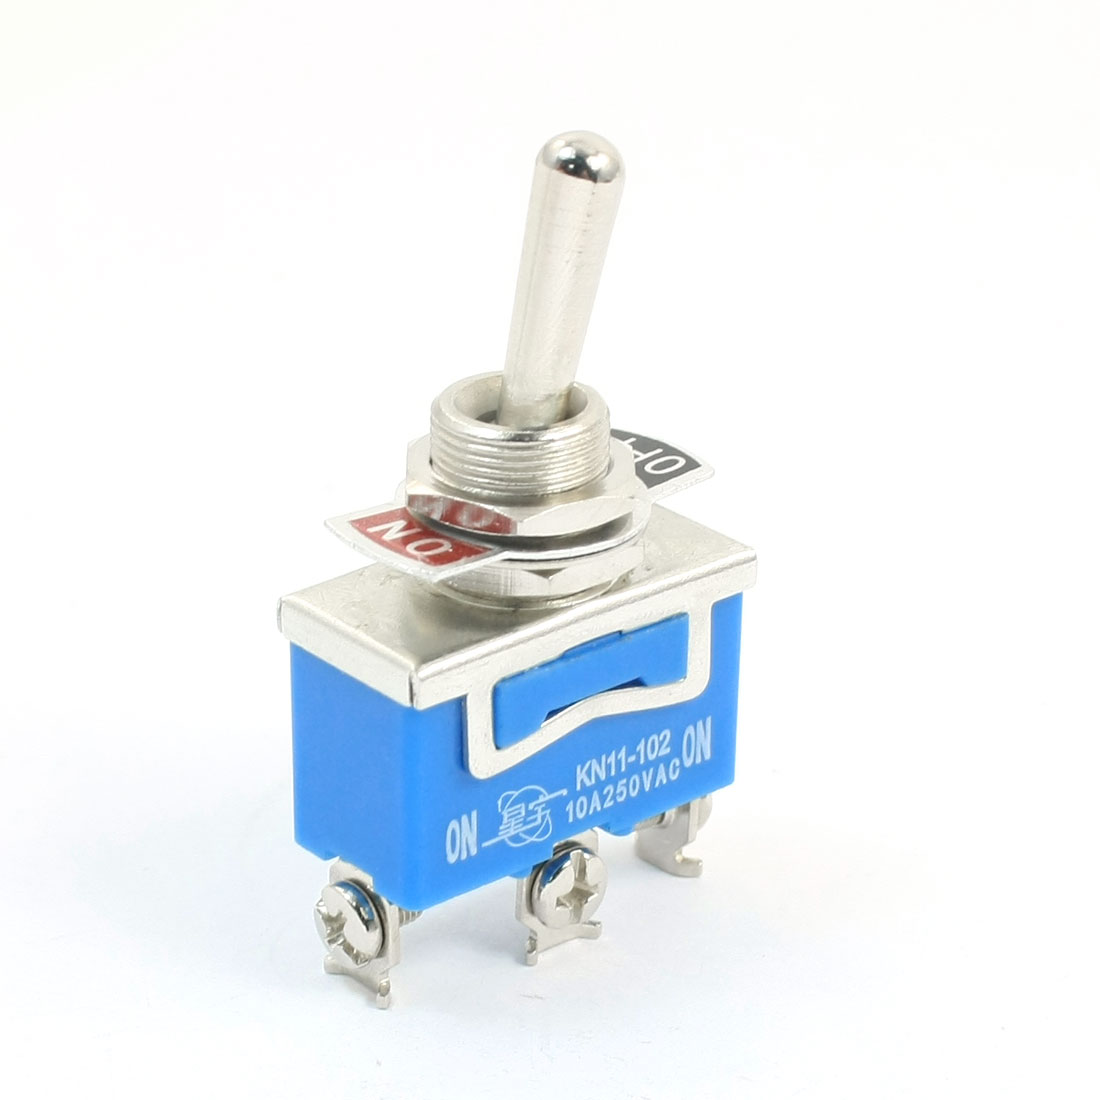 SPDT 2 Position AC250V 10A 3 Screws Terminals Toggle Switch